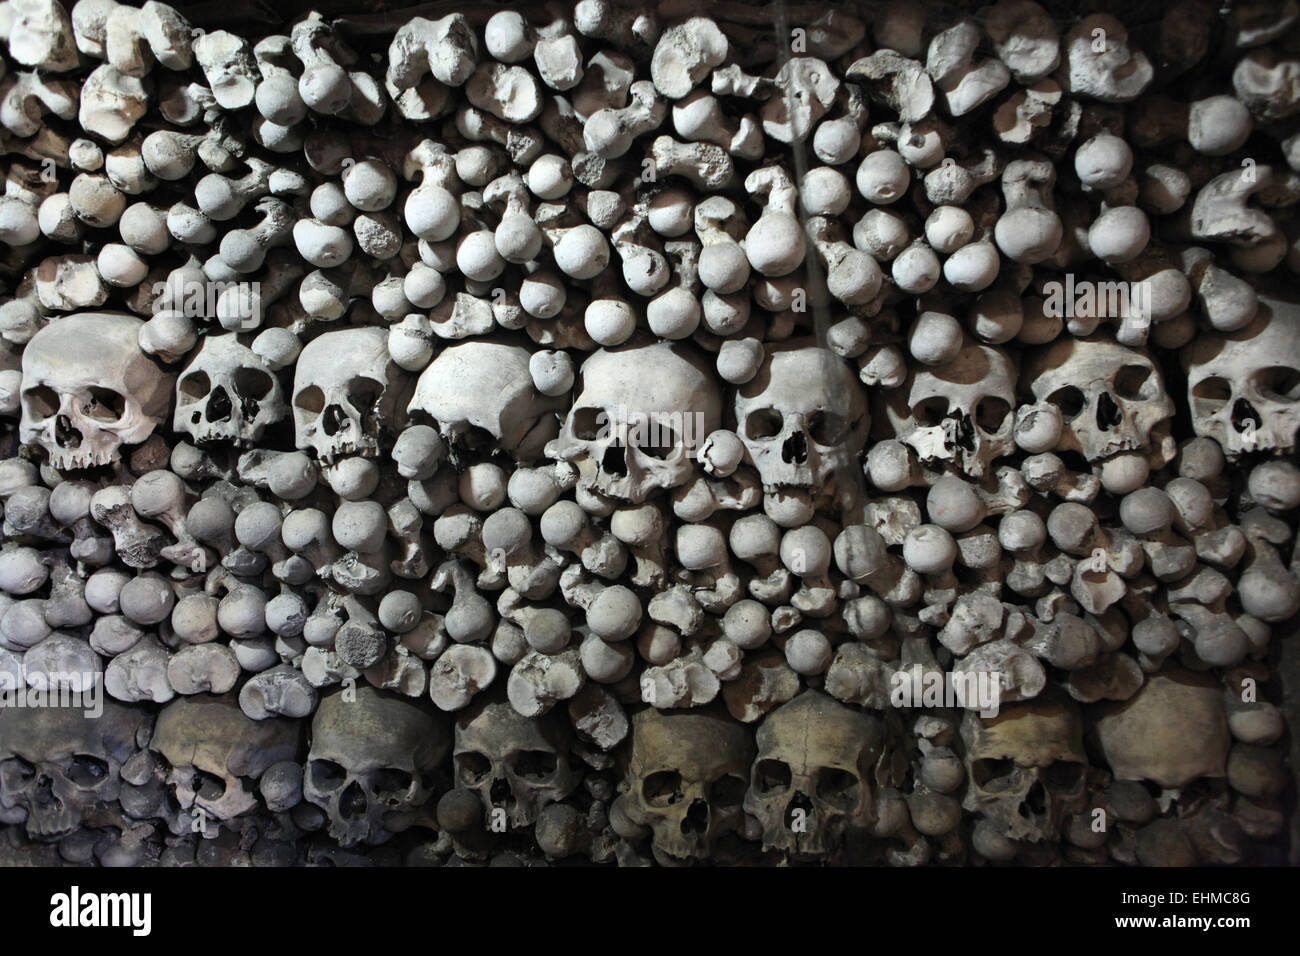 Human bones and skulls in the Sedlec Ossuary near Kutna Hora, Czech Republic. - Stock Image